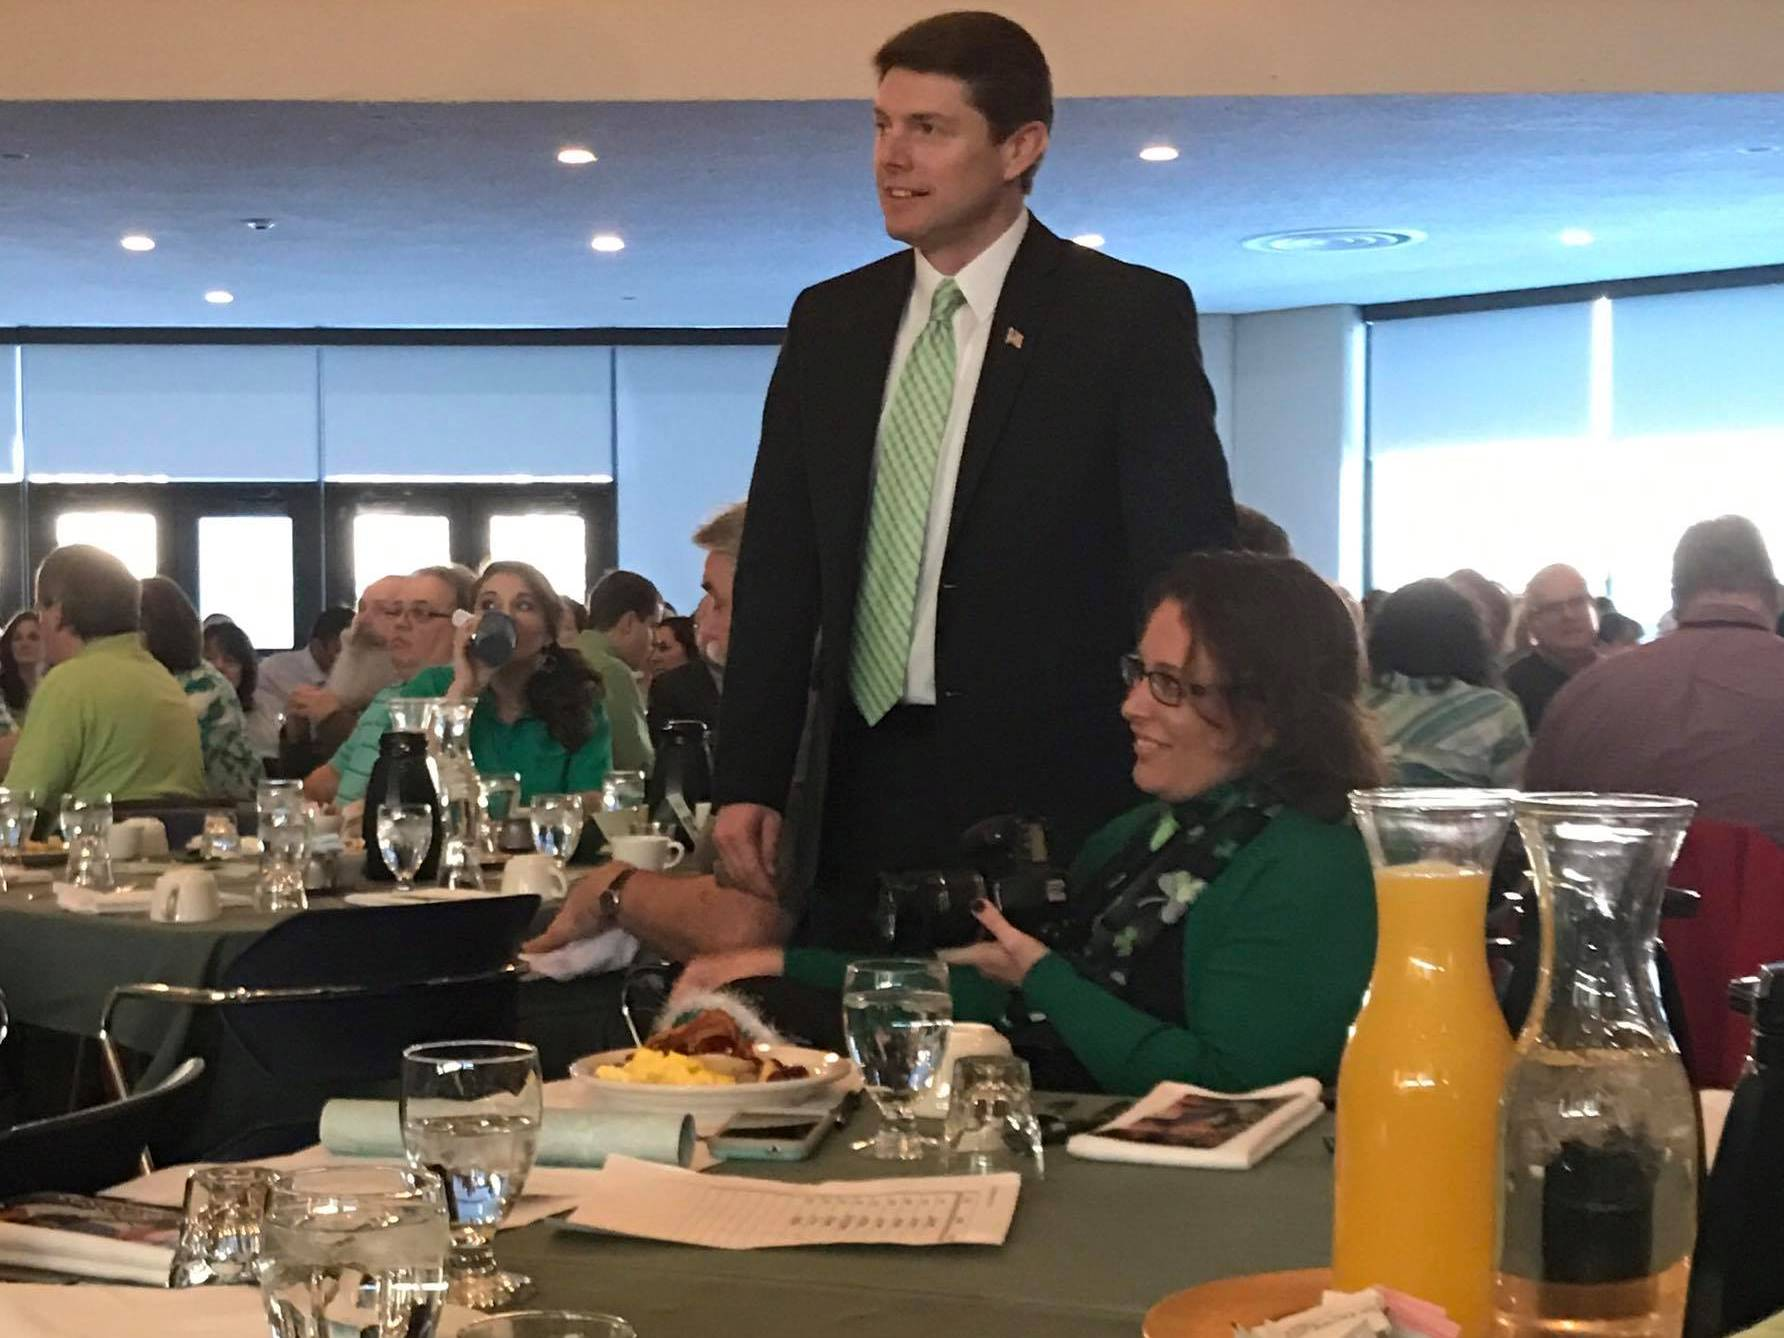 In March 2017, Assemblyman Jones attended the North Country Chamber of Commerce's 59th Annual St. Patrick's Day Breakfast.<br />